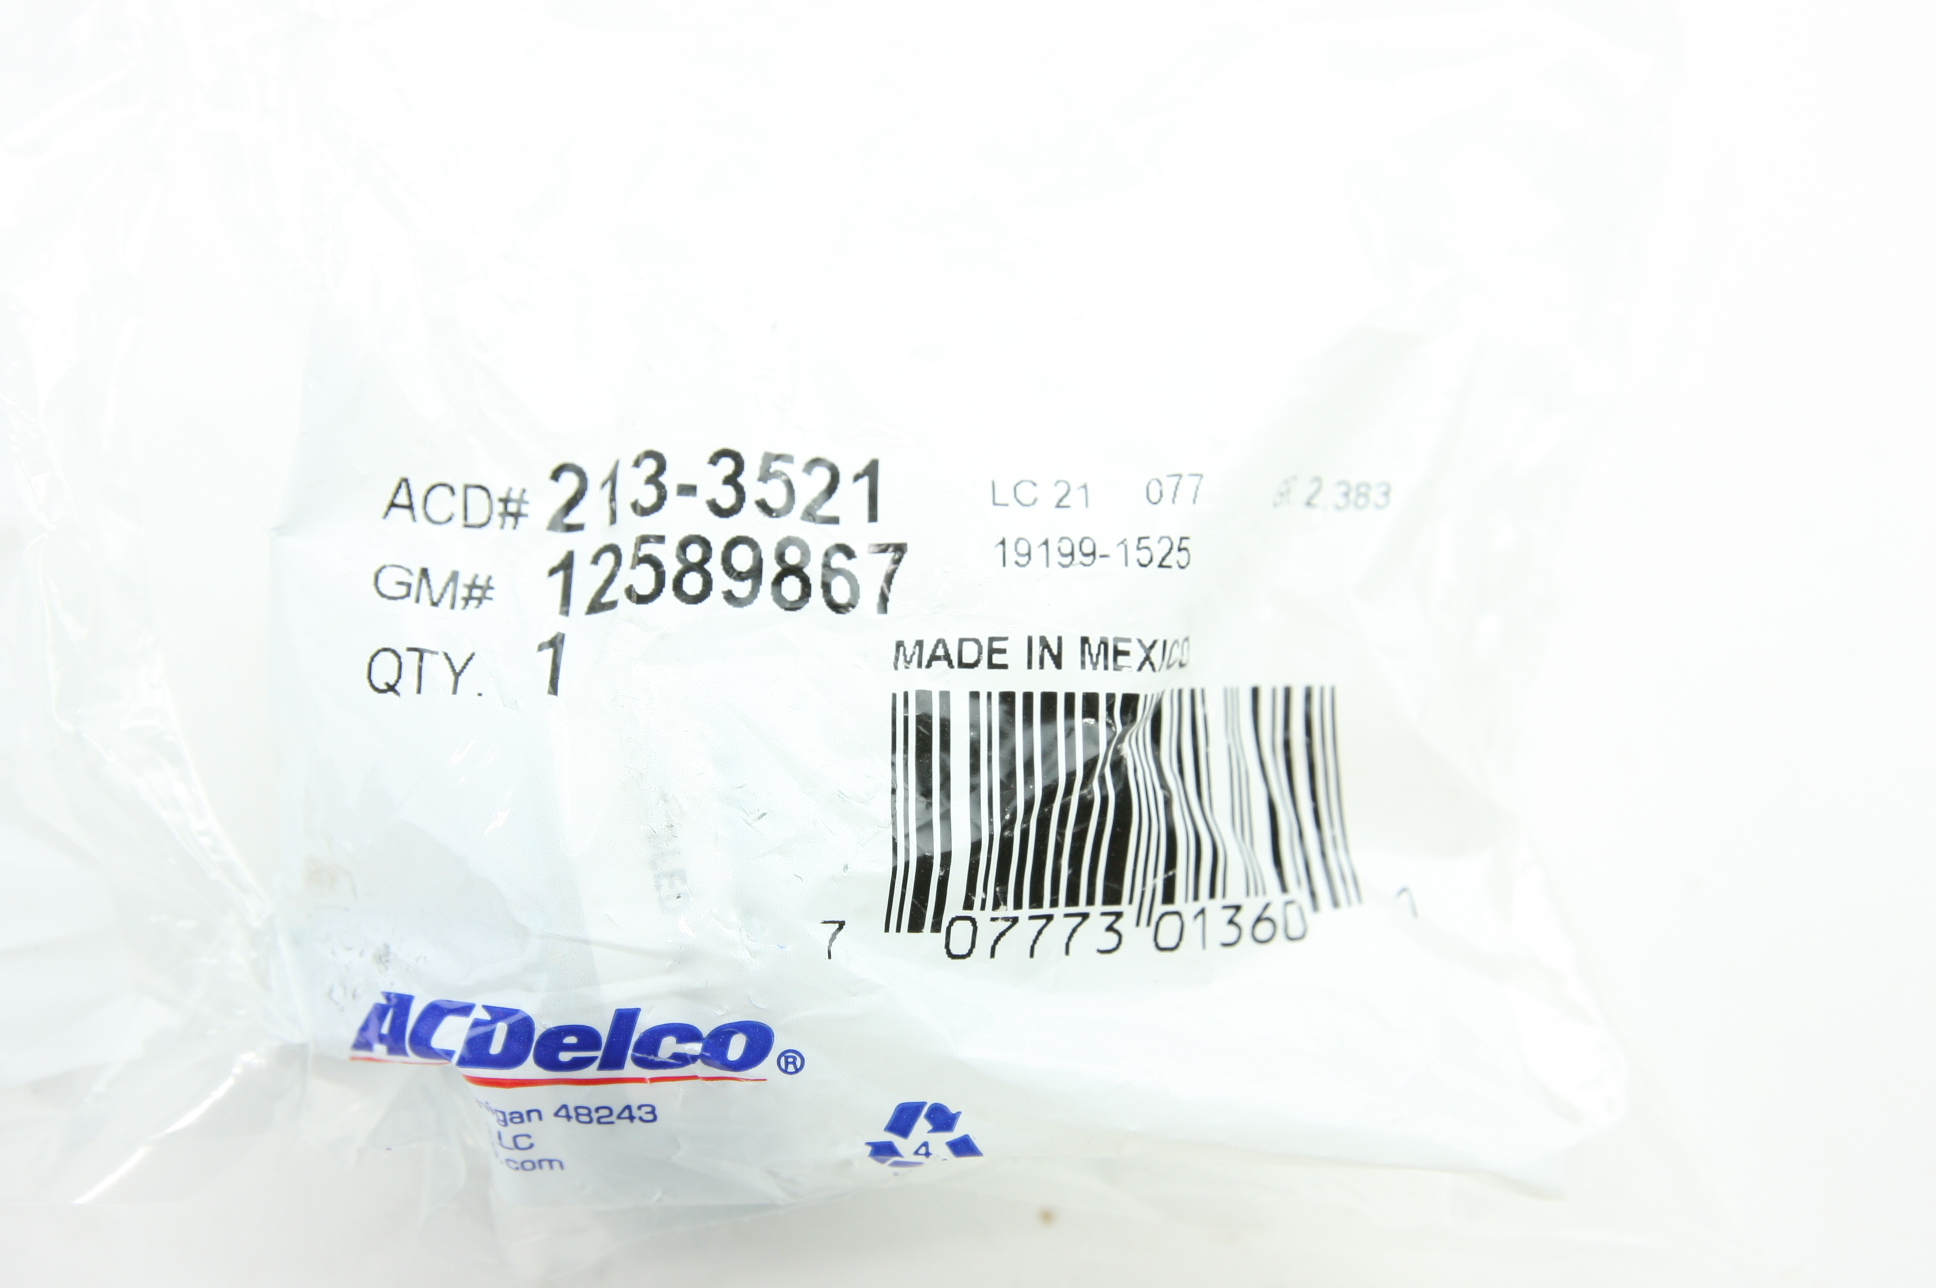 New Pair ACDelco 213-3521 OEM Chevy Express Knock Sensor GM 12589867 NIP - image 5